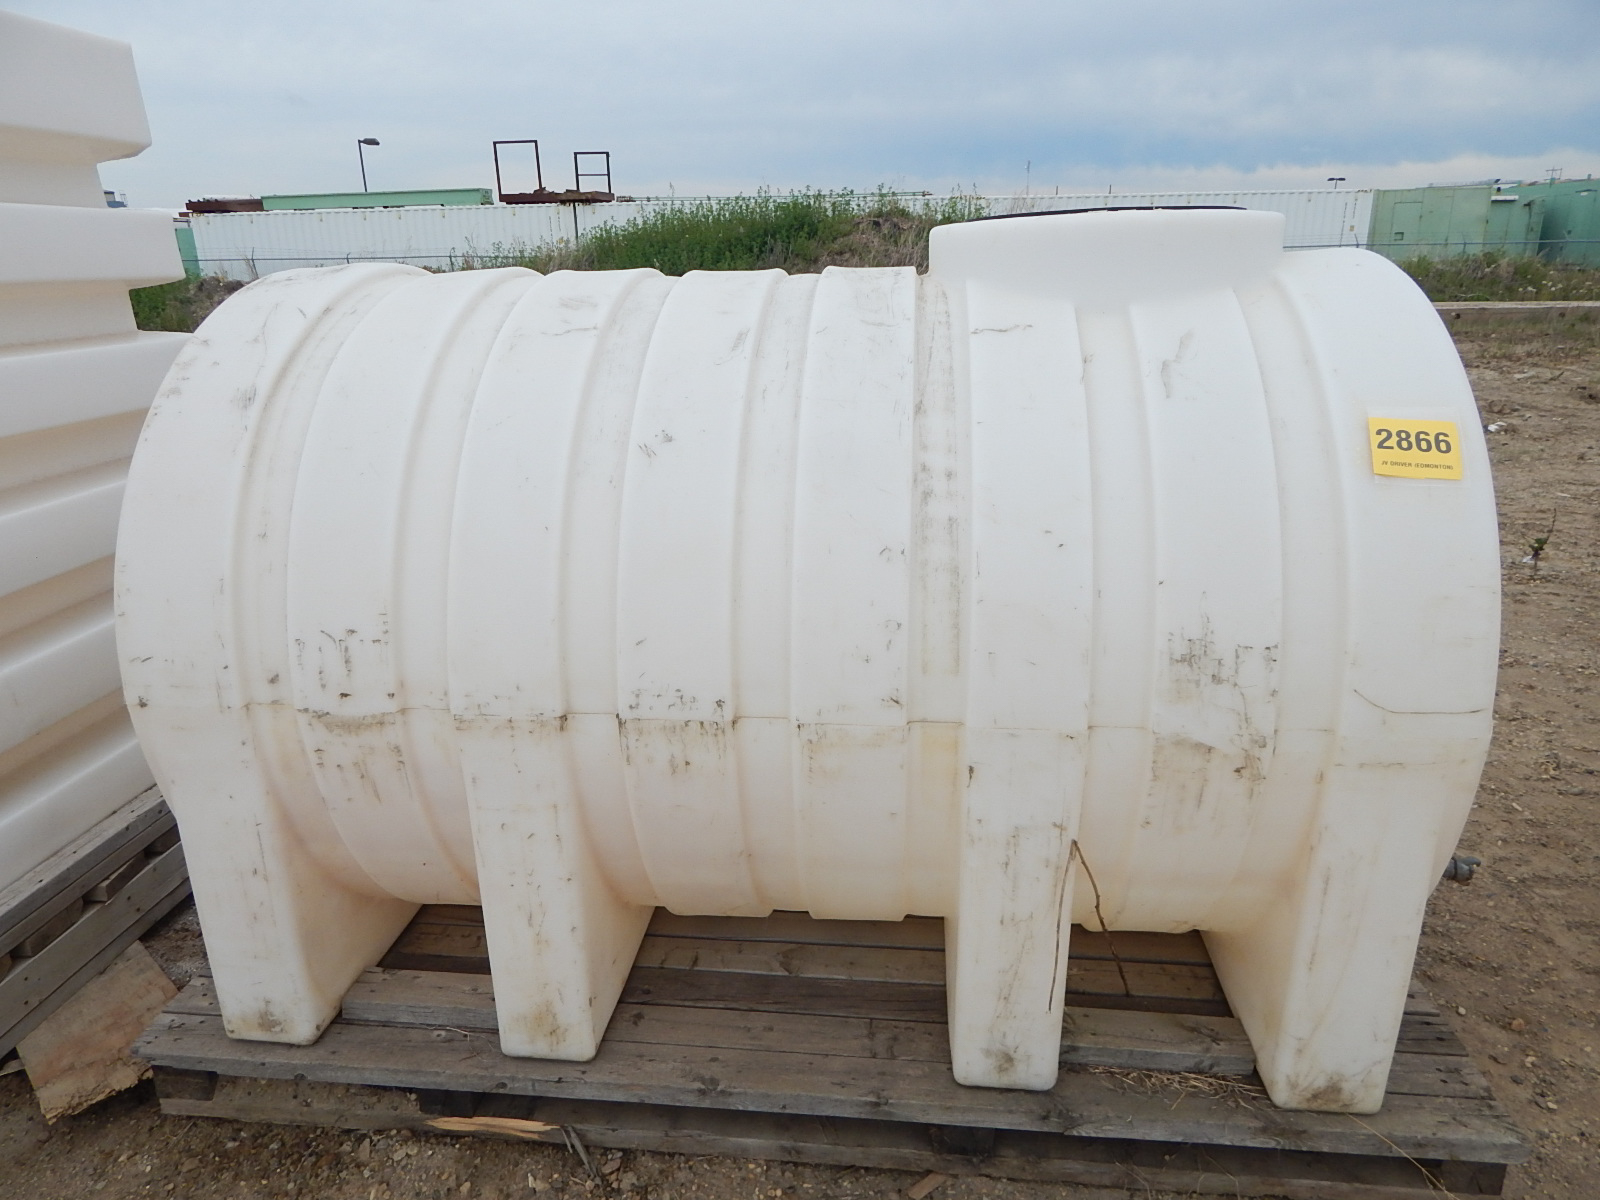 LIQUID STORAGE TANK WITH APPROX. 500GALLON CAPACITY, S/N: N/A